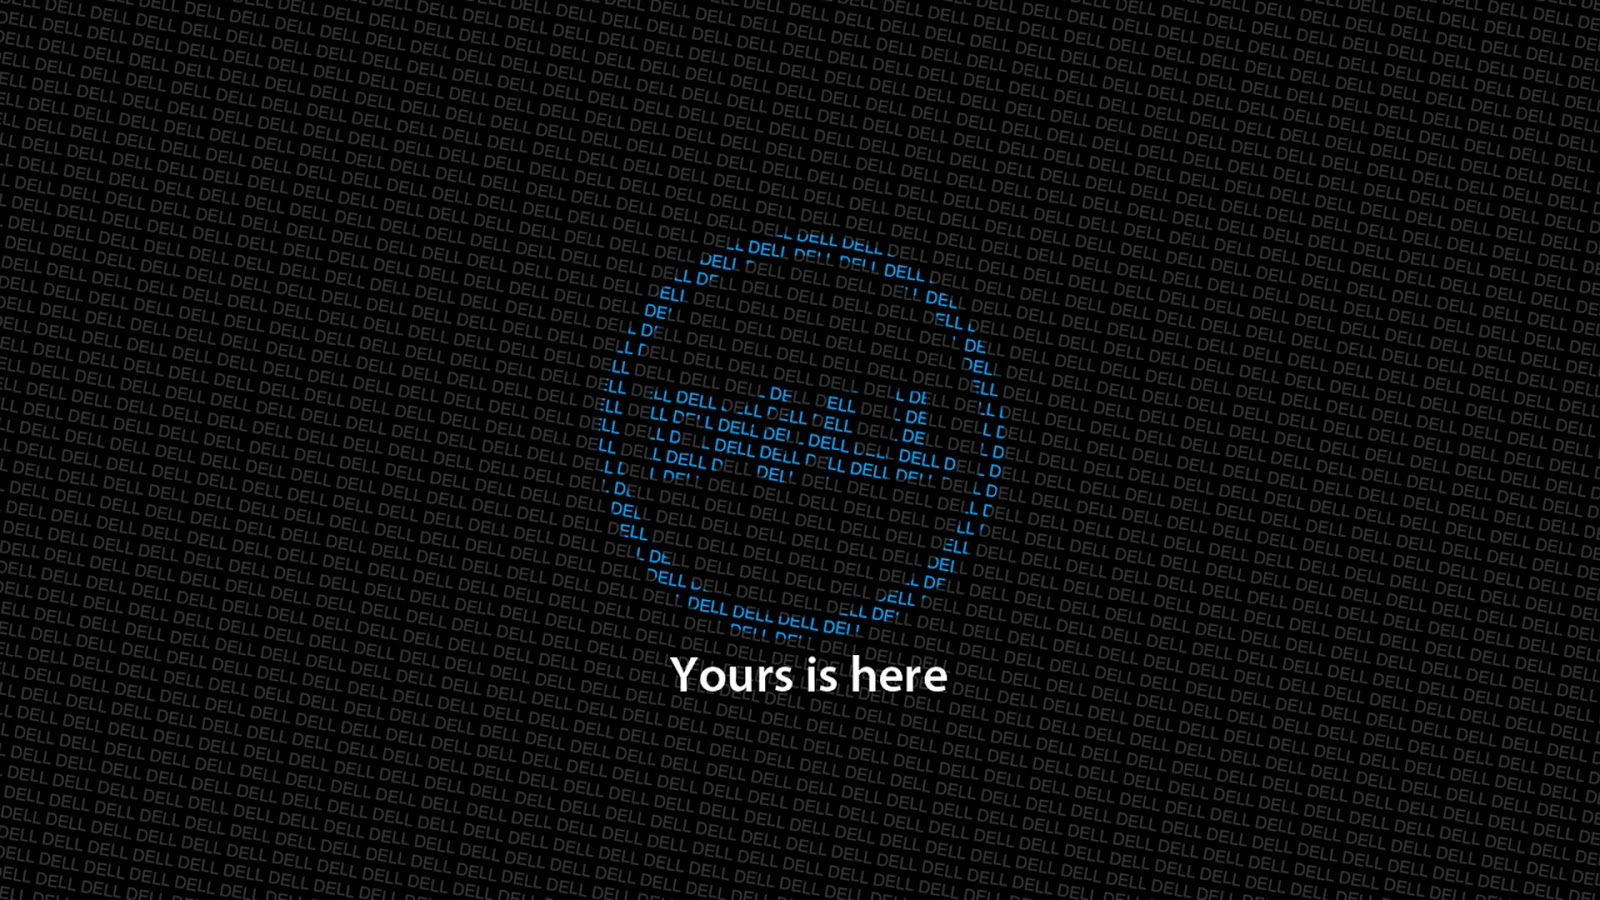 Hd Wallpapers For Dell Laptop Lite Mycket